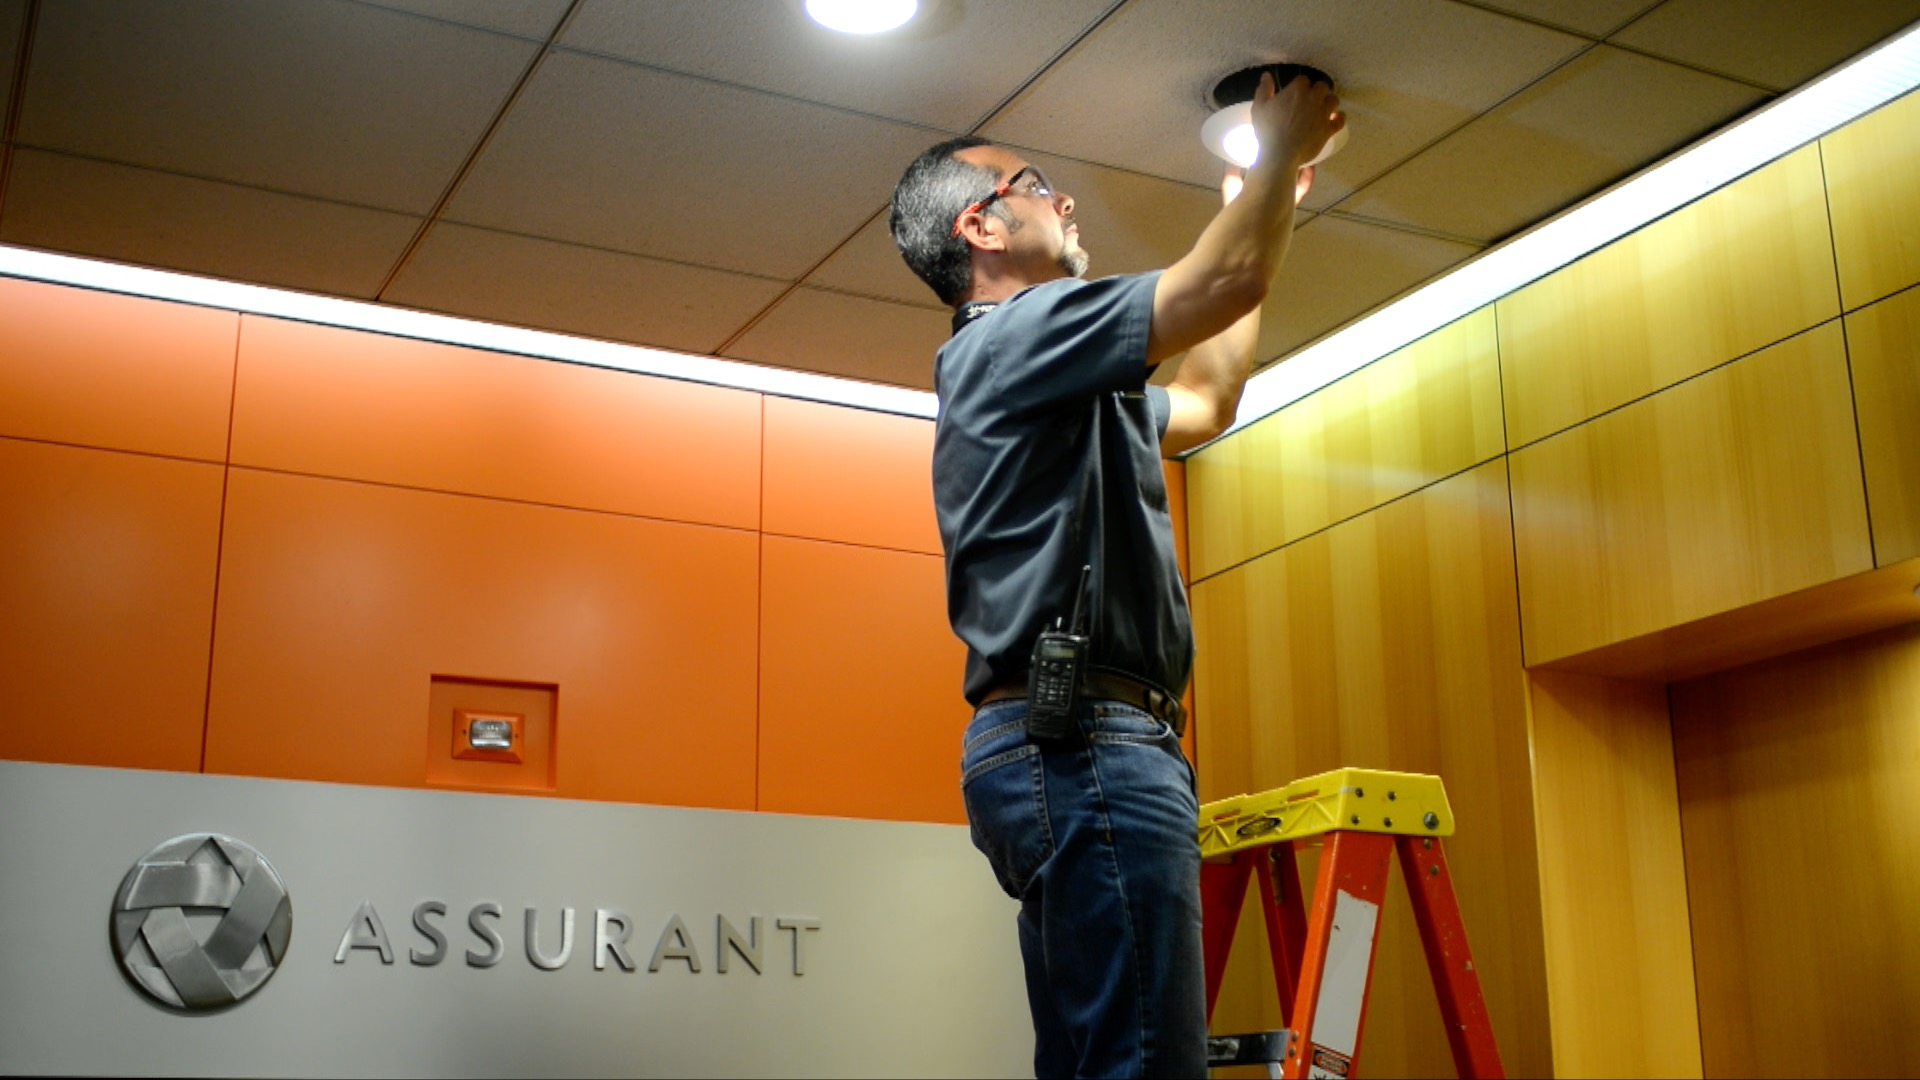 Employee Changes Light at Assurant Office